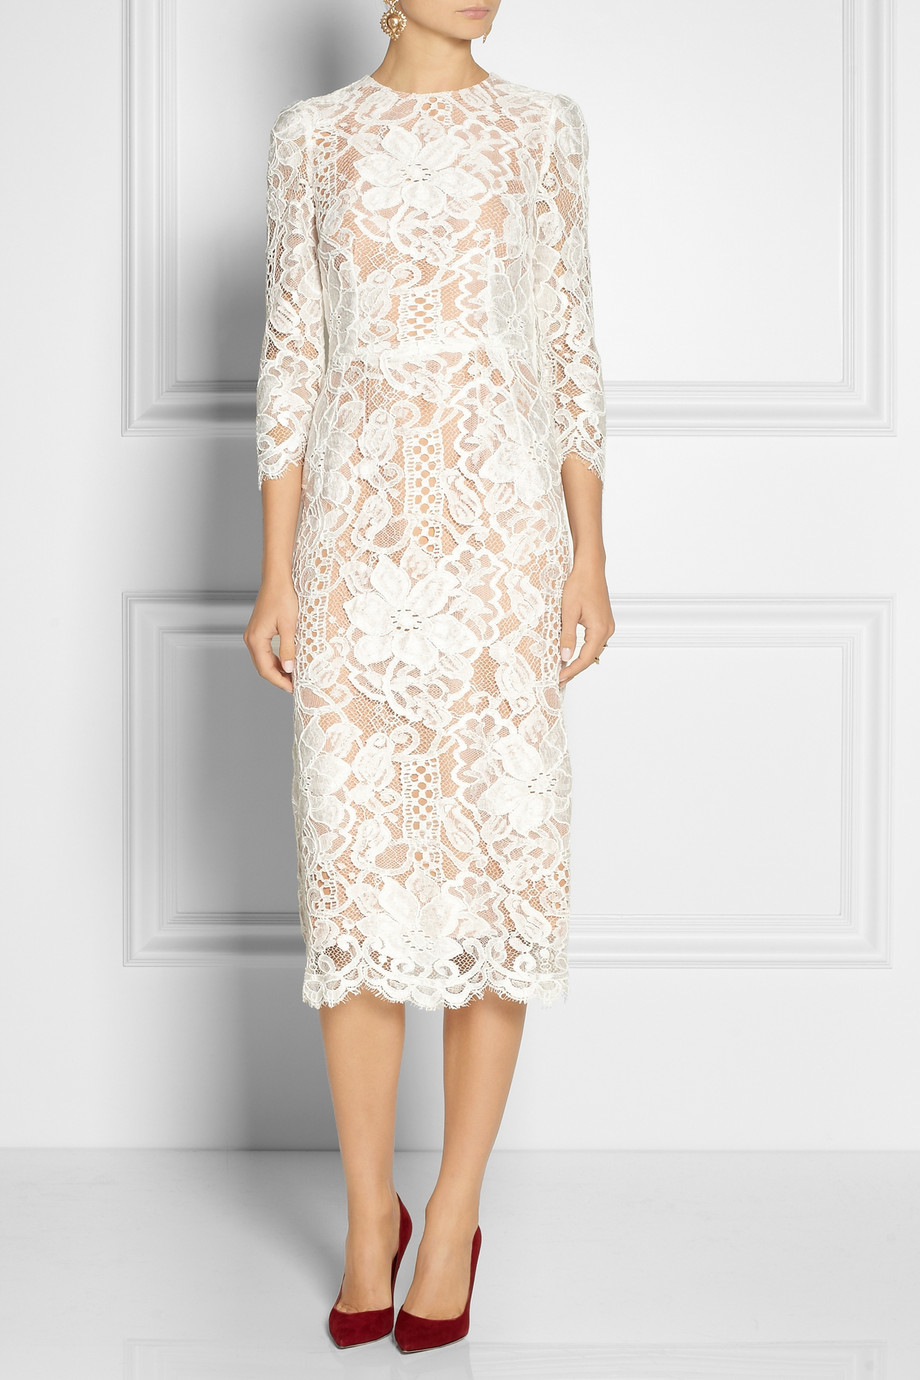 To acquire Gabbana and Dolce white lace dress picture trends